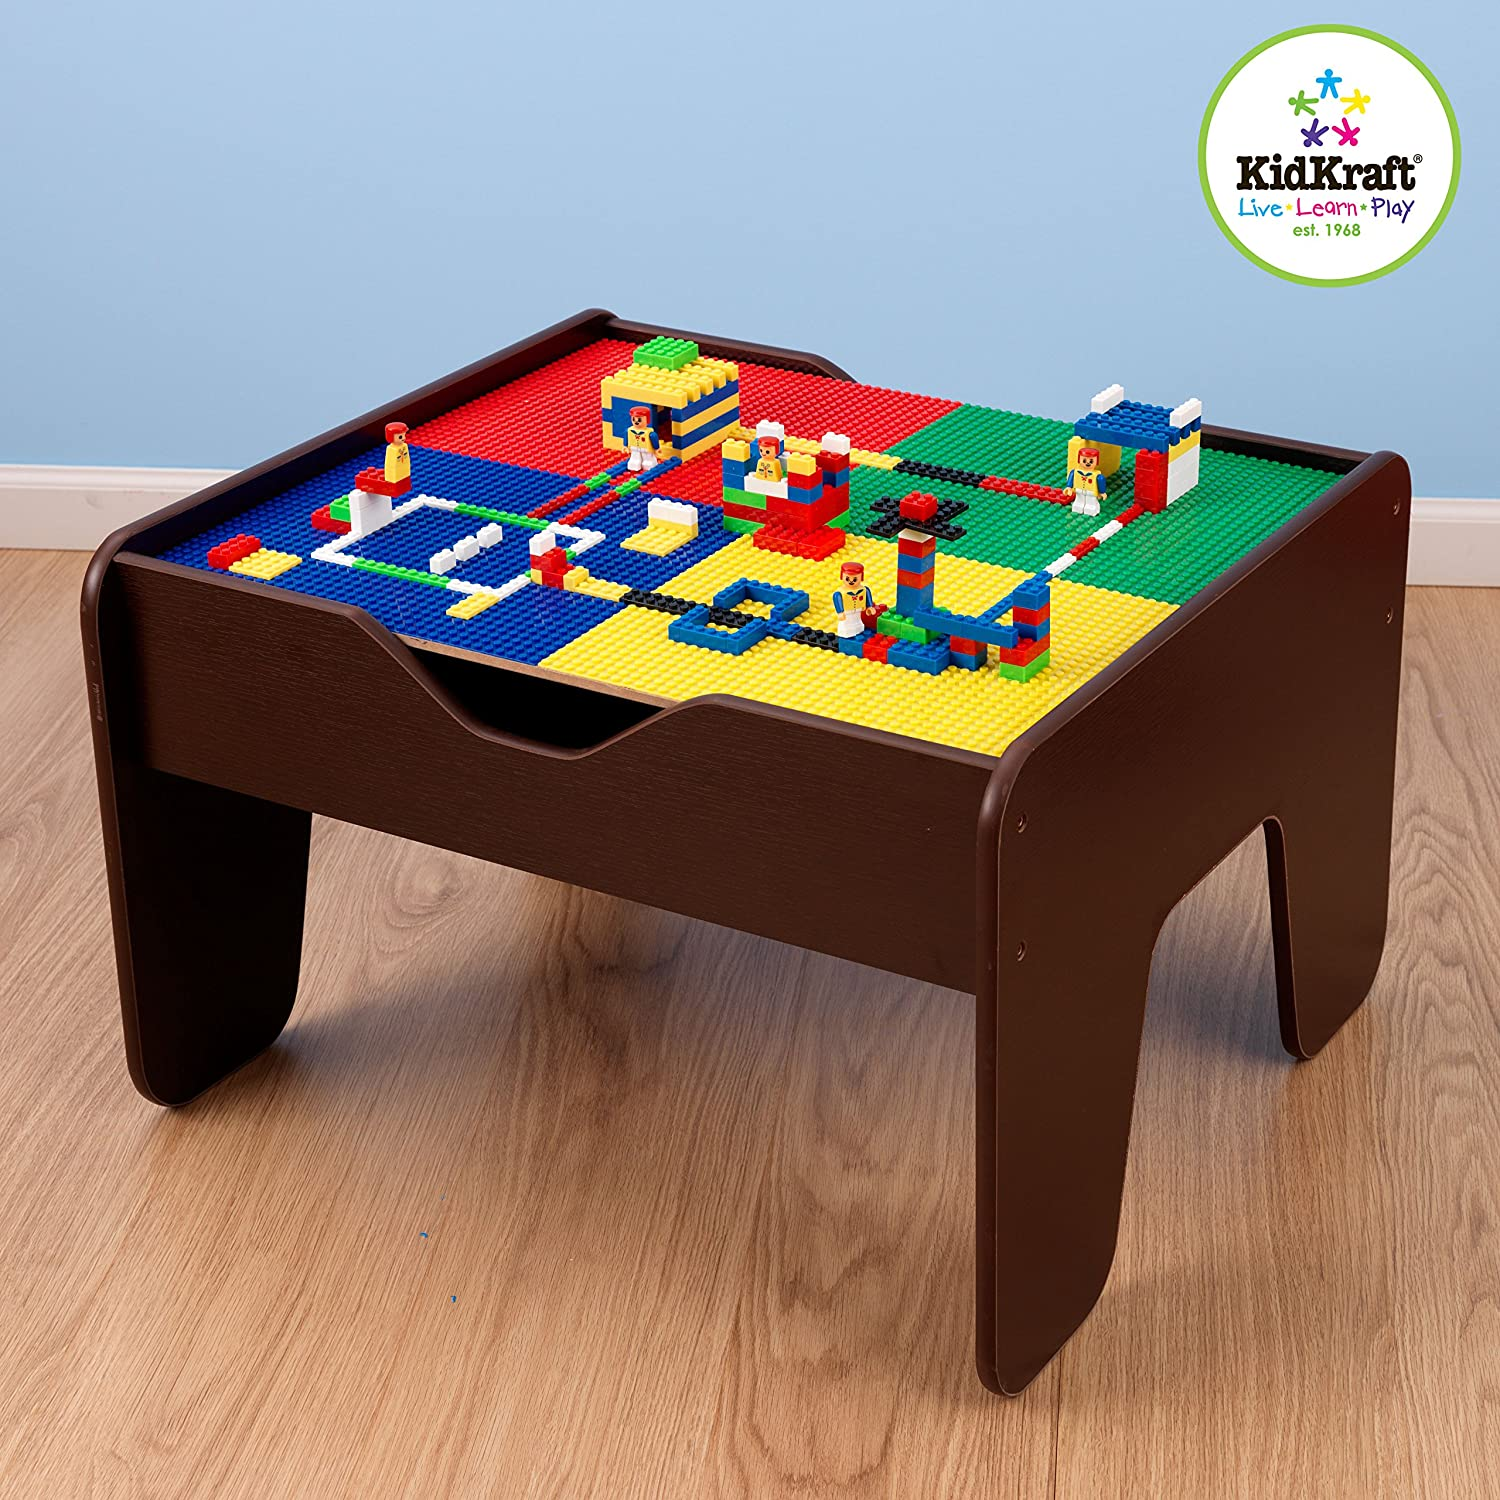 & Amazon.com: Kidkraft 2-in-1 Activity Table Espresso: Toys u0026 Games